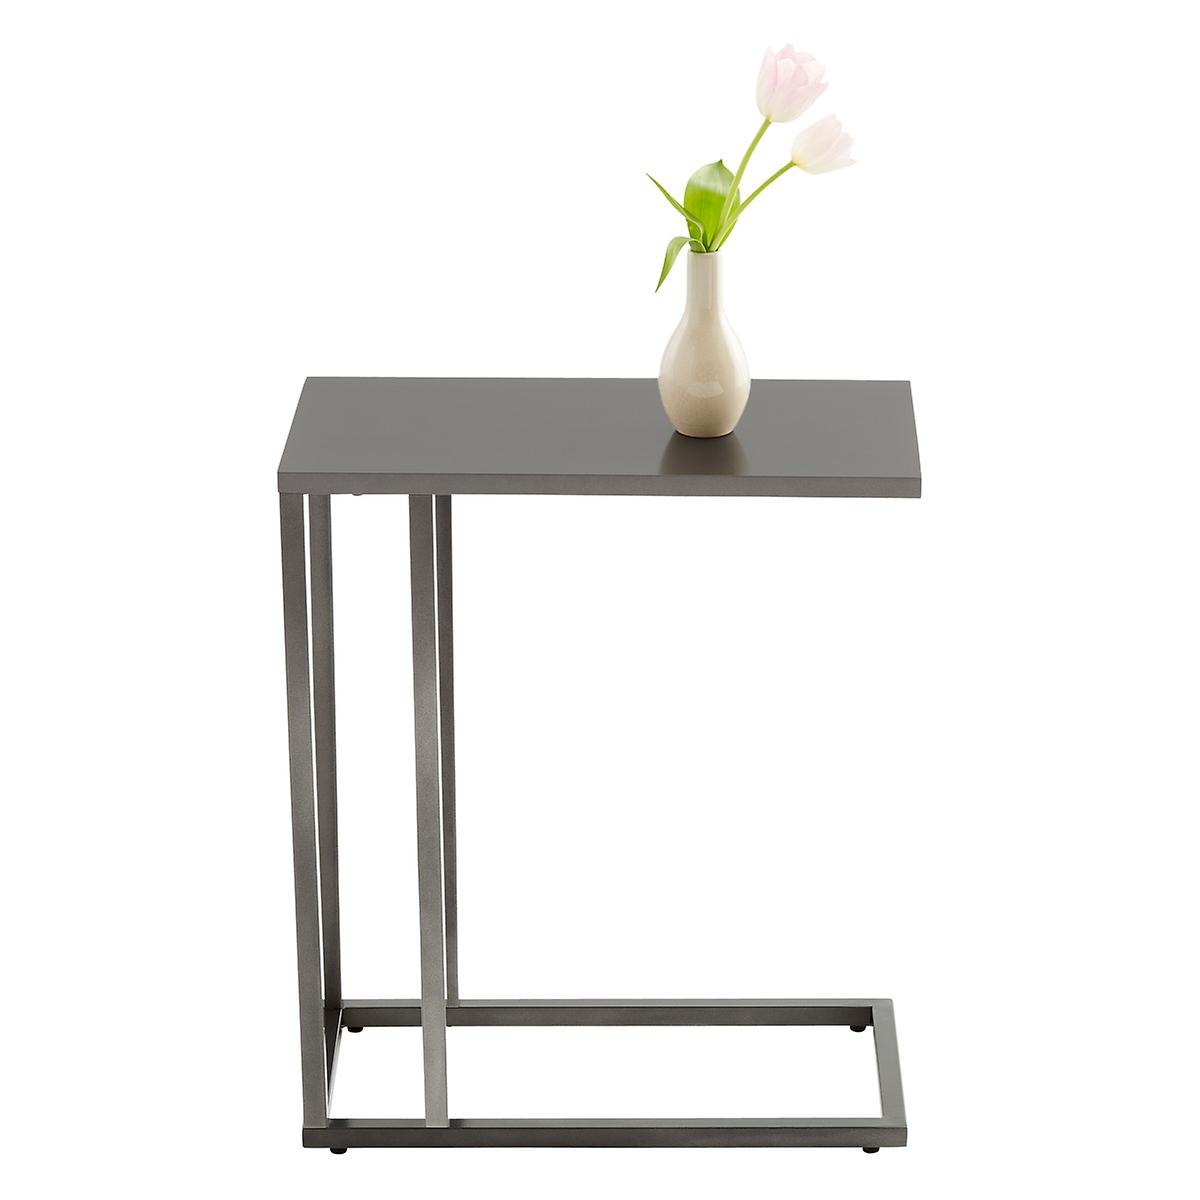 Anthracite c table the container store for Table align center